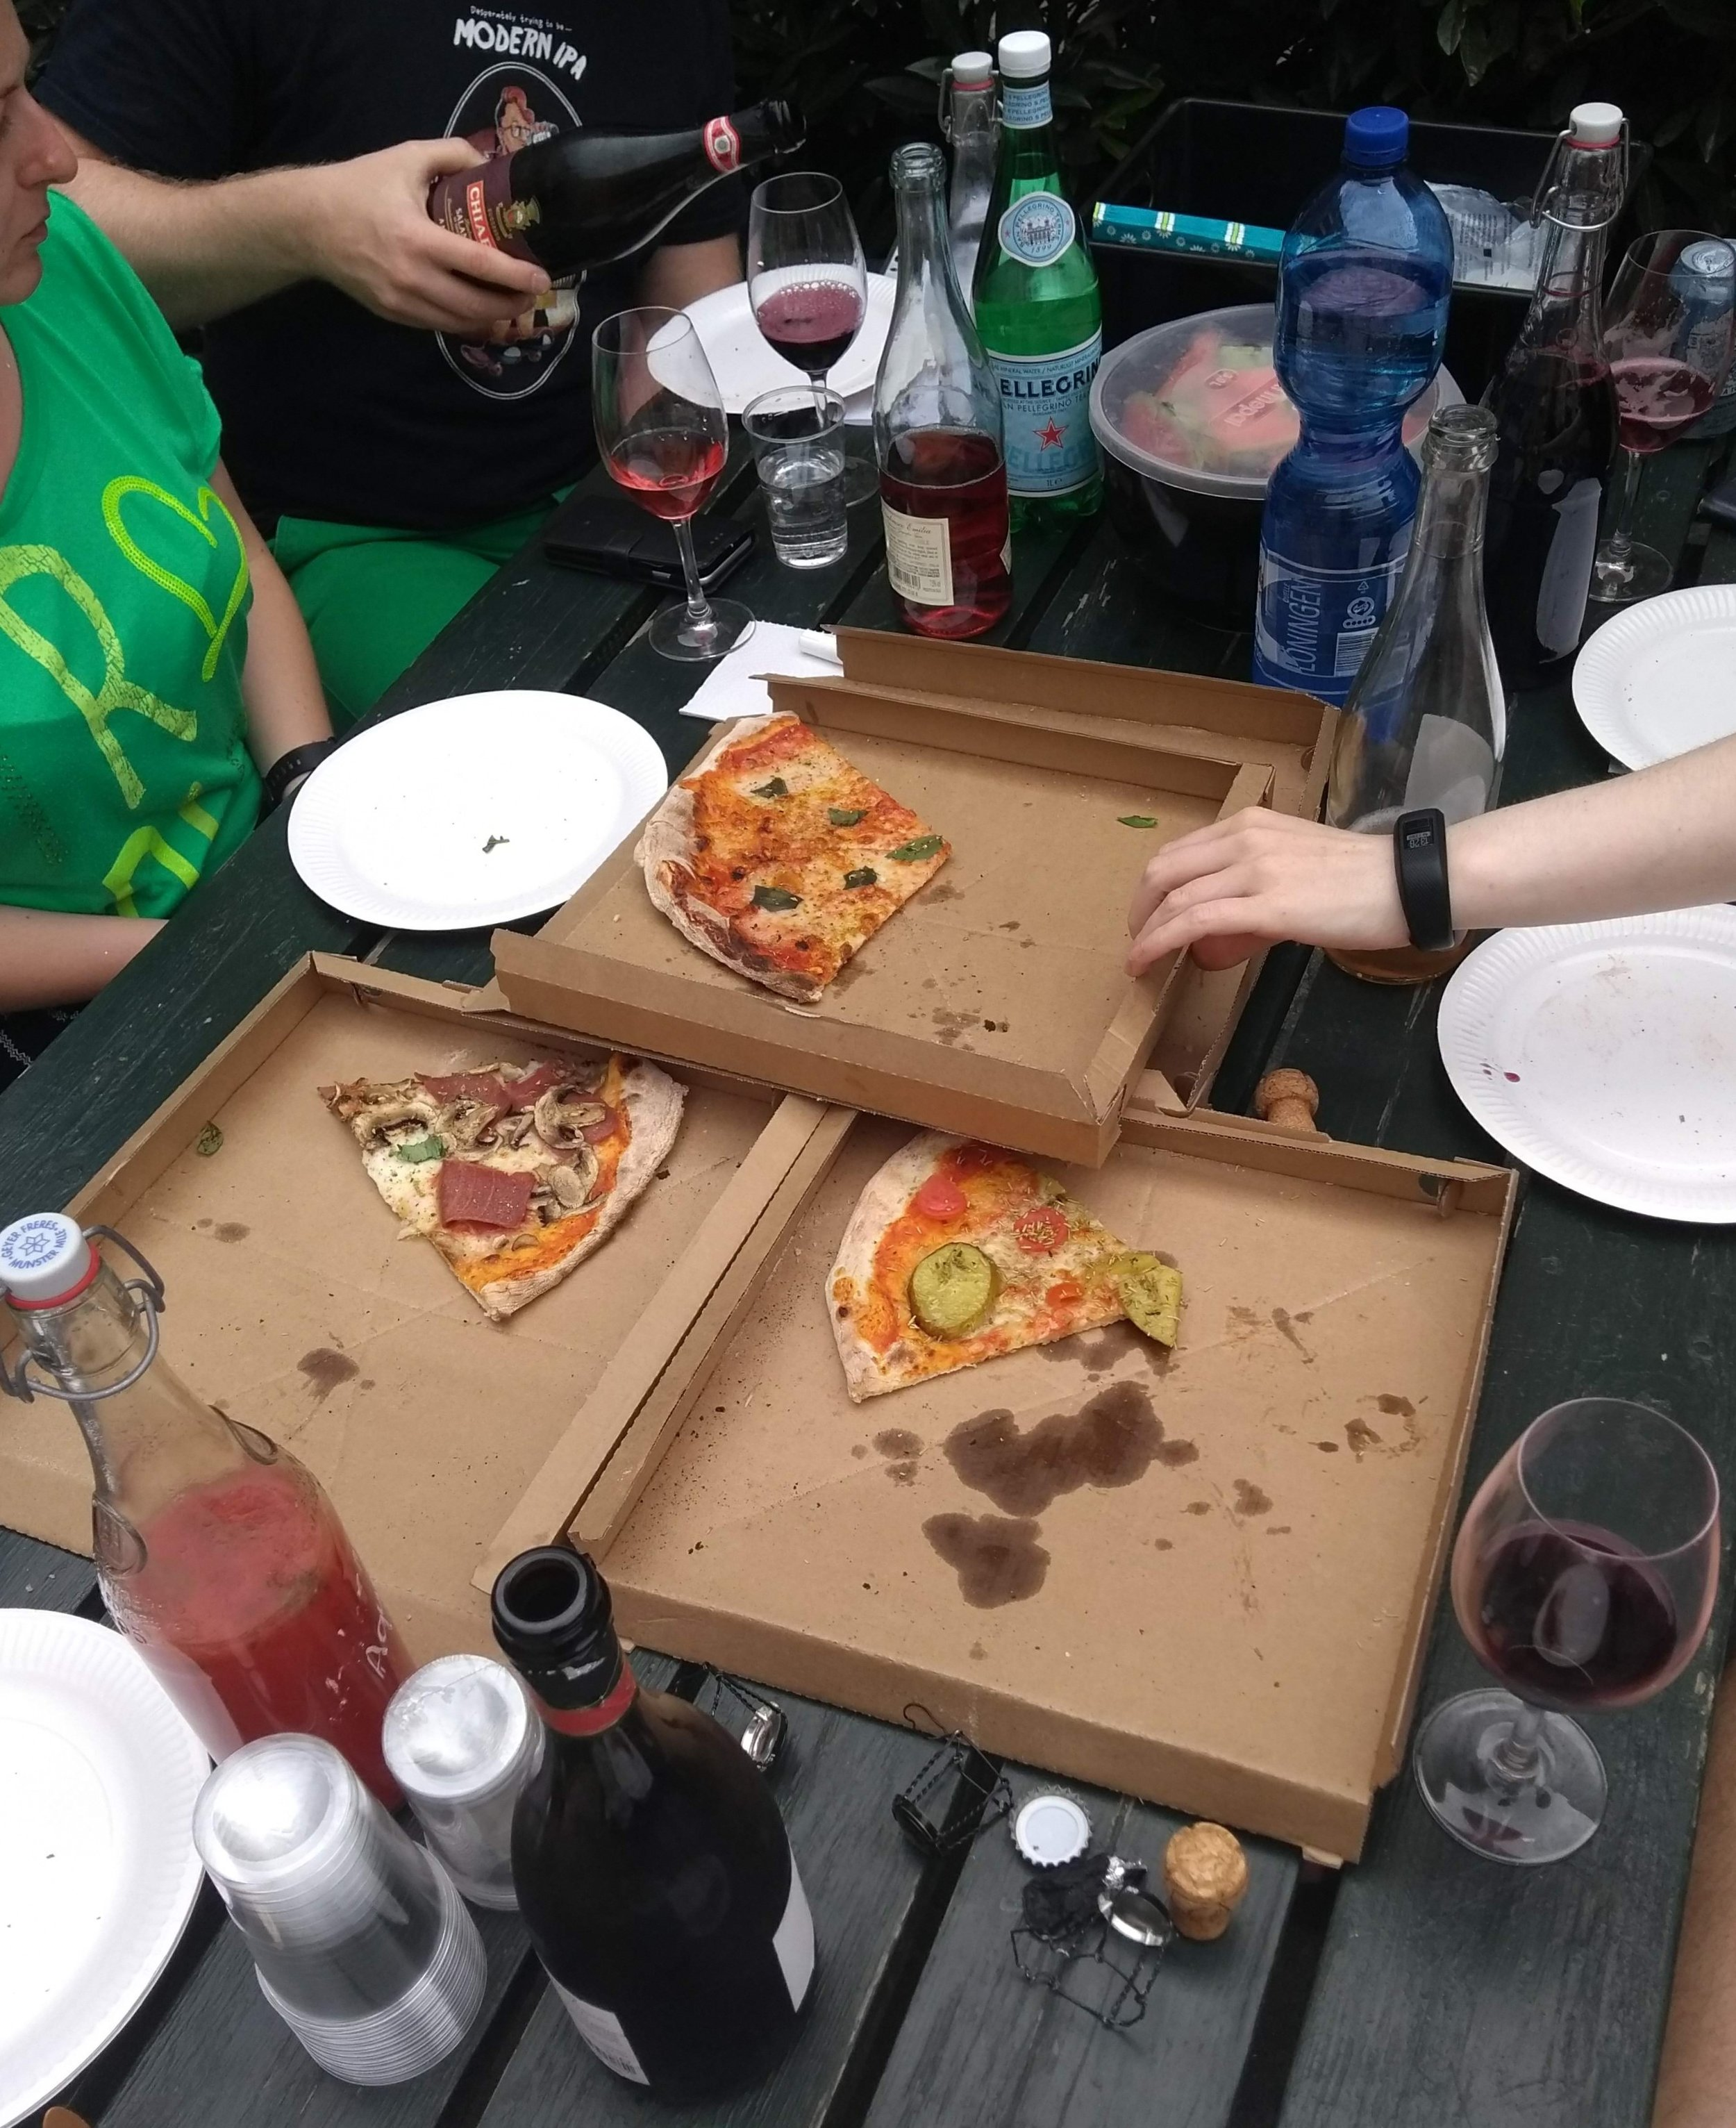 Pizza and Lambrusco with friends this weekend